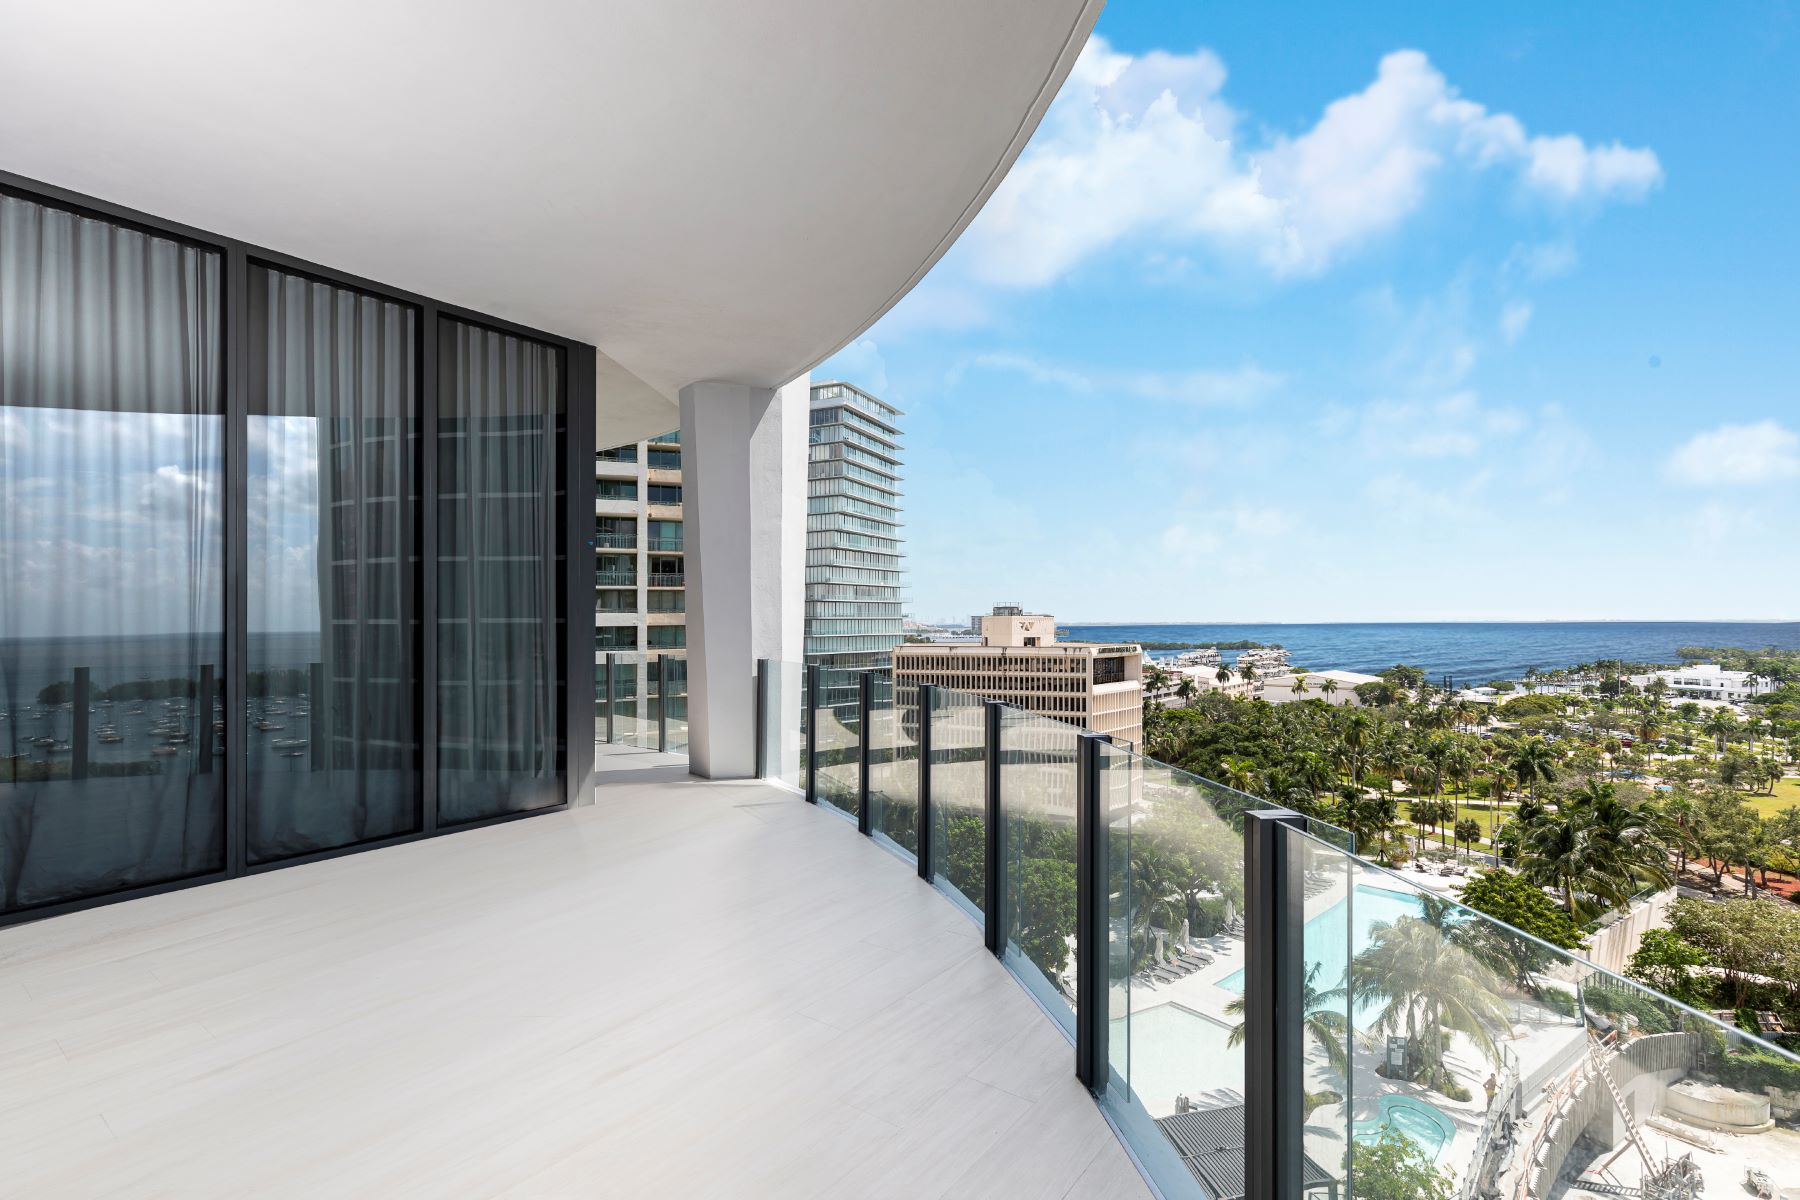 Condominiums for Sale at 2821 S Bayshore Dr 10A Coconut Grove, Florida 33133 United States